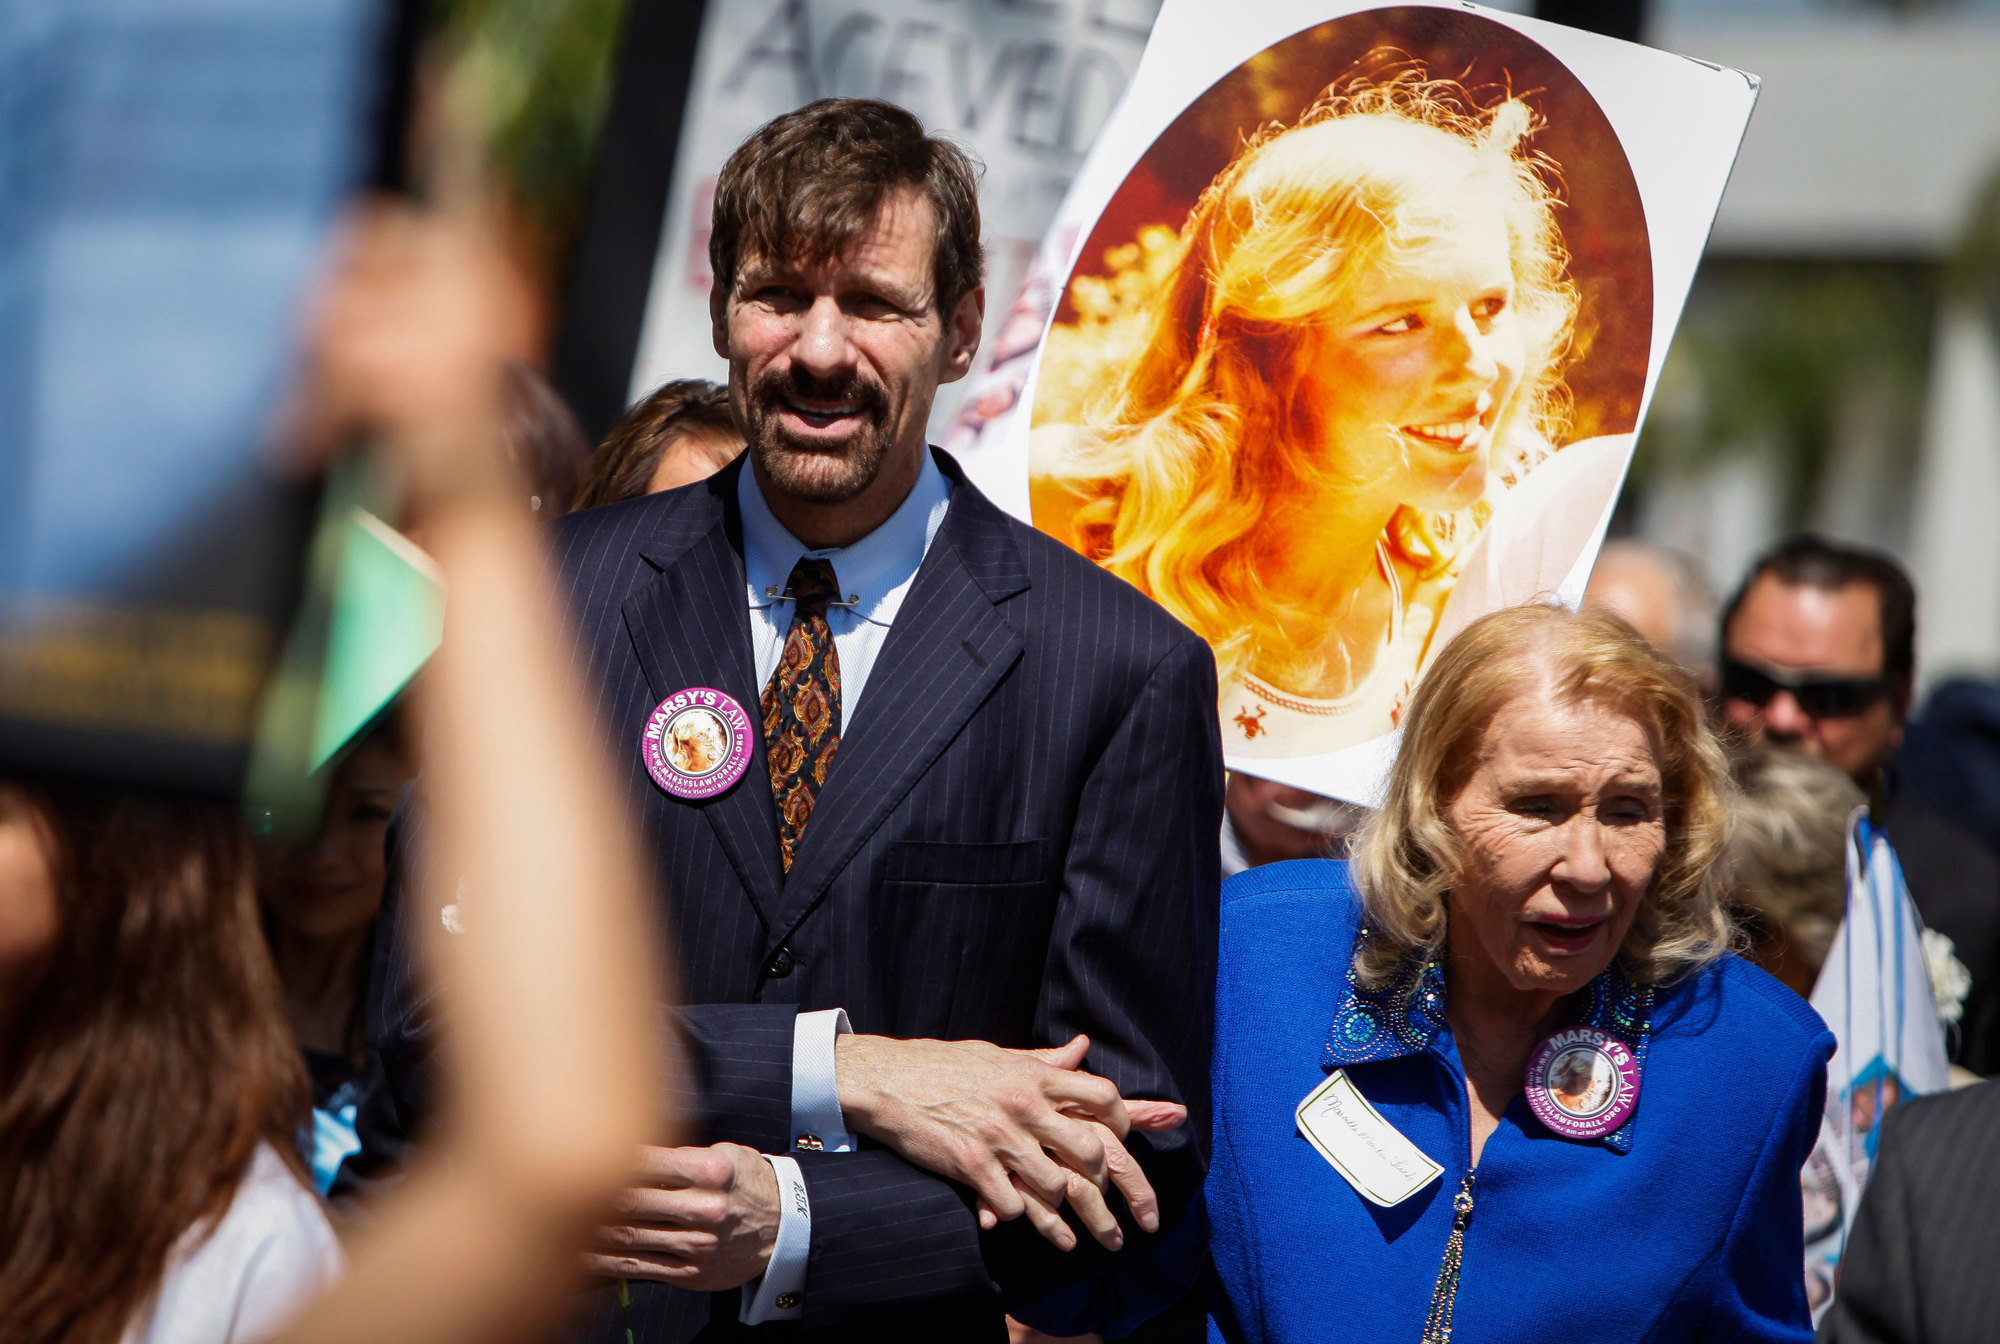 Henry T. Nicholas III, left, and his mother, Marcella Leach, with a photo of his sister, Marsy Nicholas, during the Orange County Victims' Rights March and Rally in 2013.